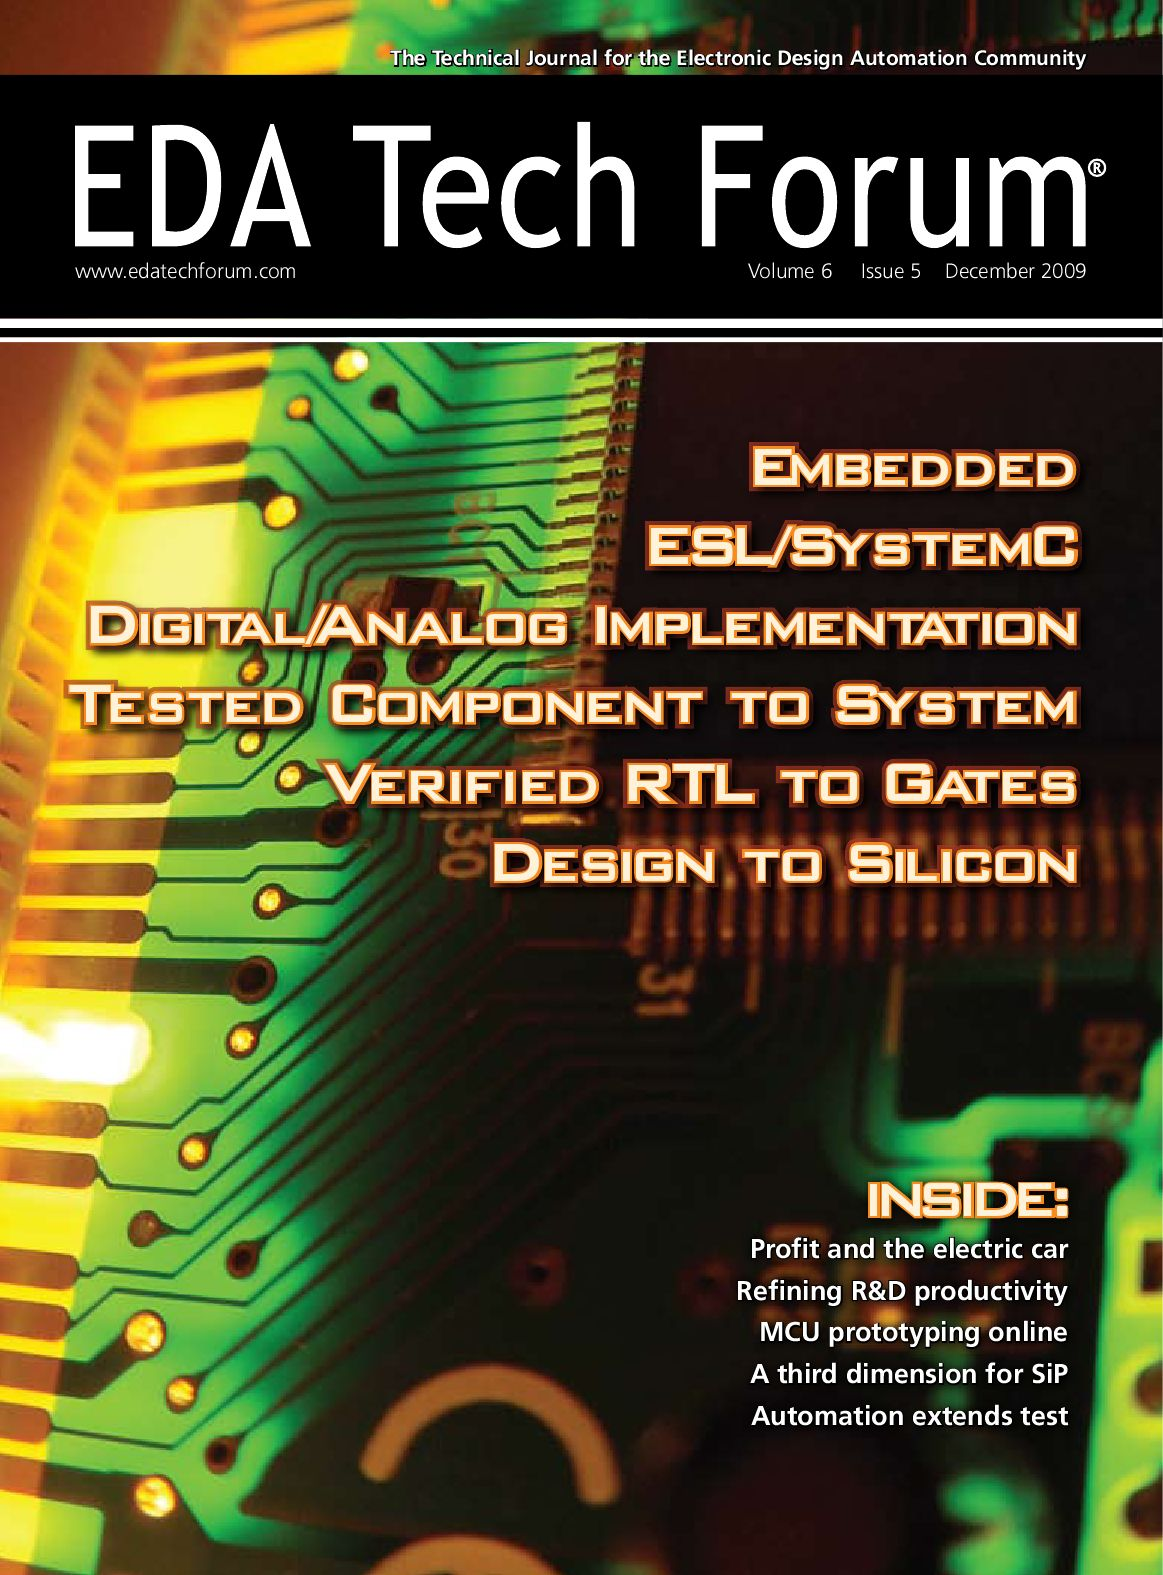 Eda Tech Forum Journal By Rtc Media Issuu Stripboard Projects Timer No 1 Schematic The Rest Of Ron S Circuits